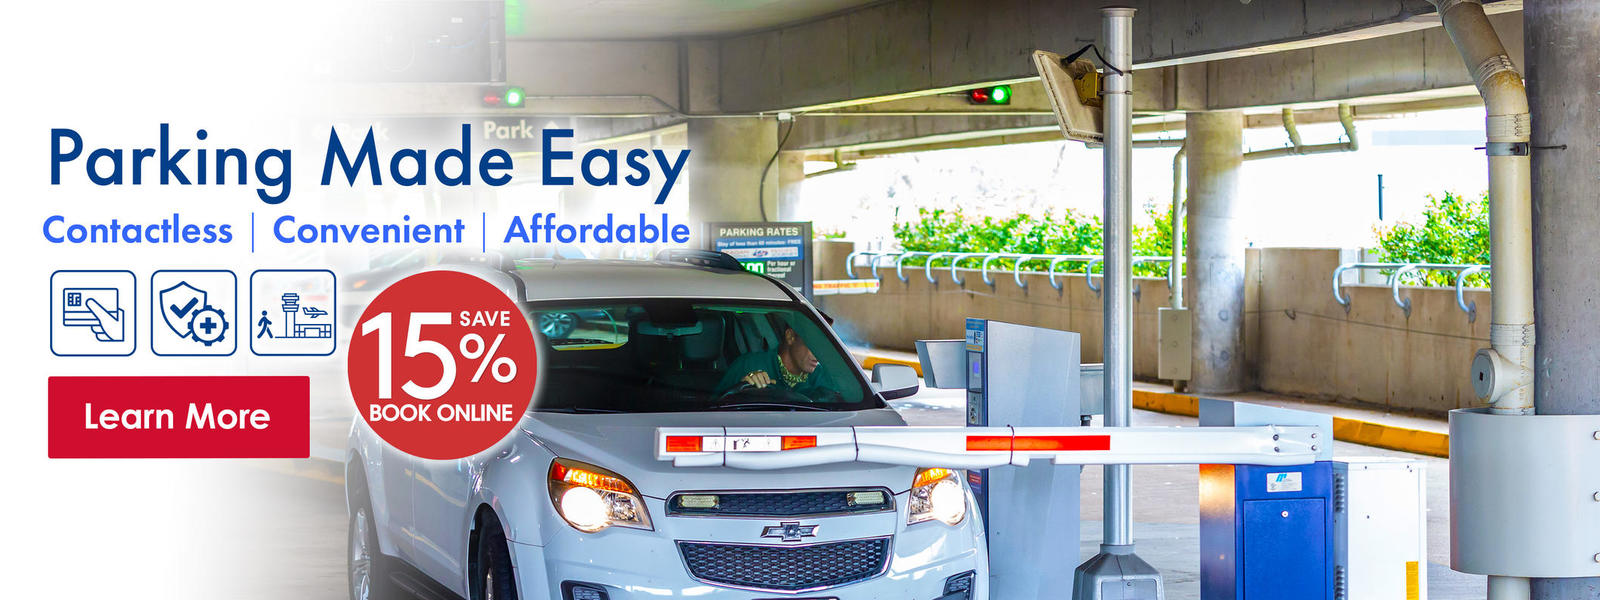 Parking Made Easy DCA